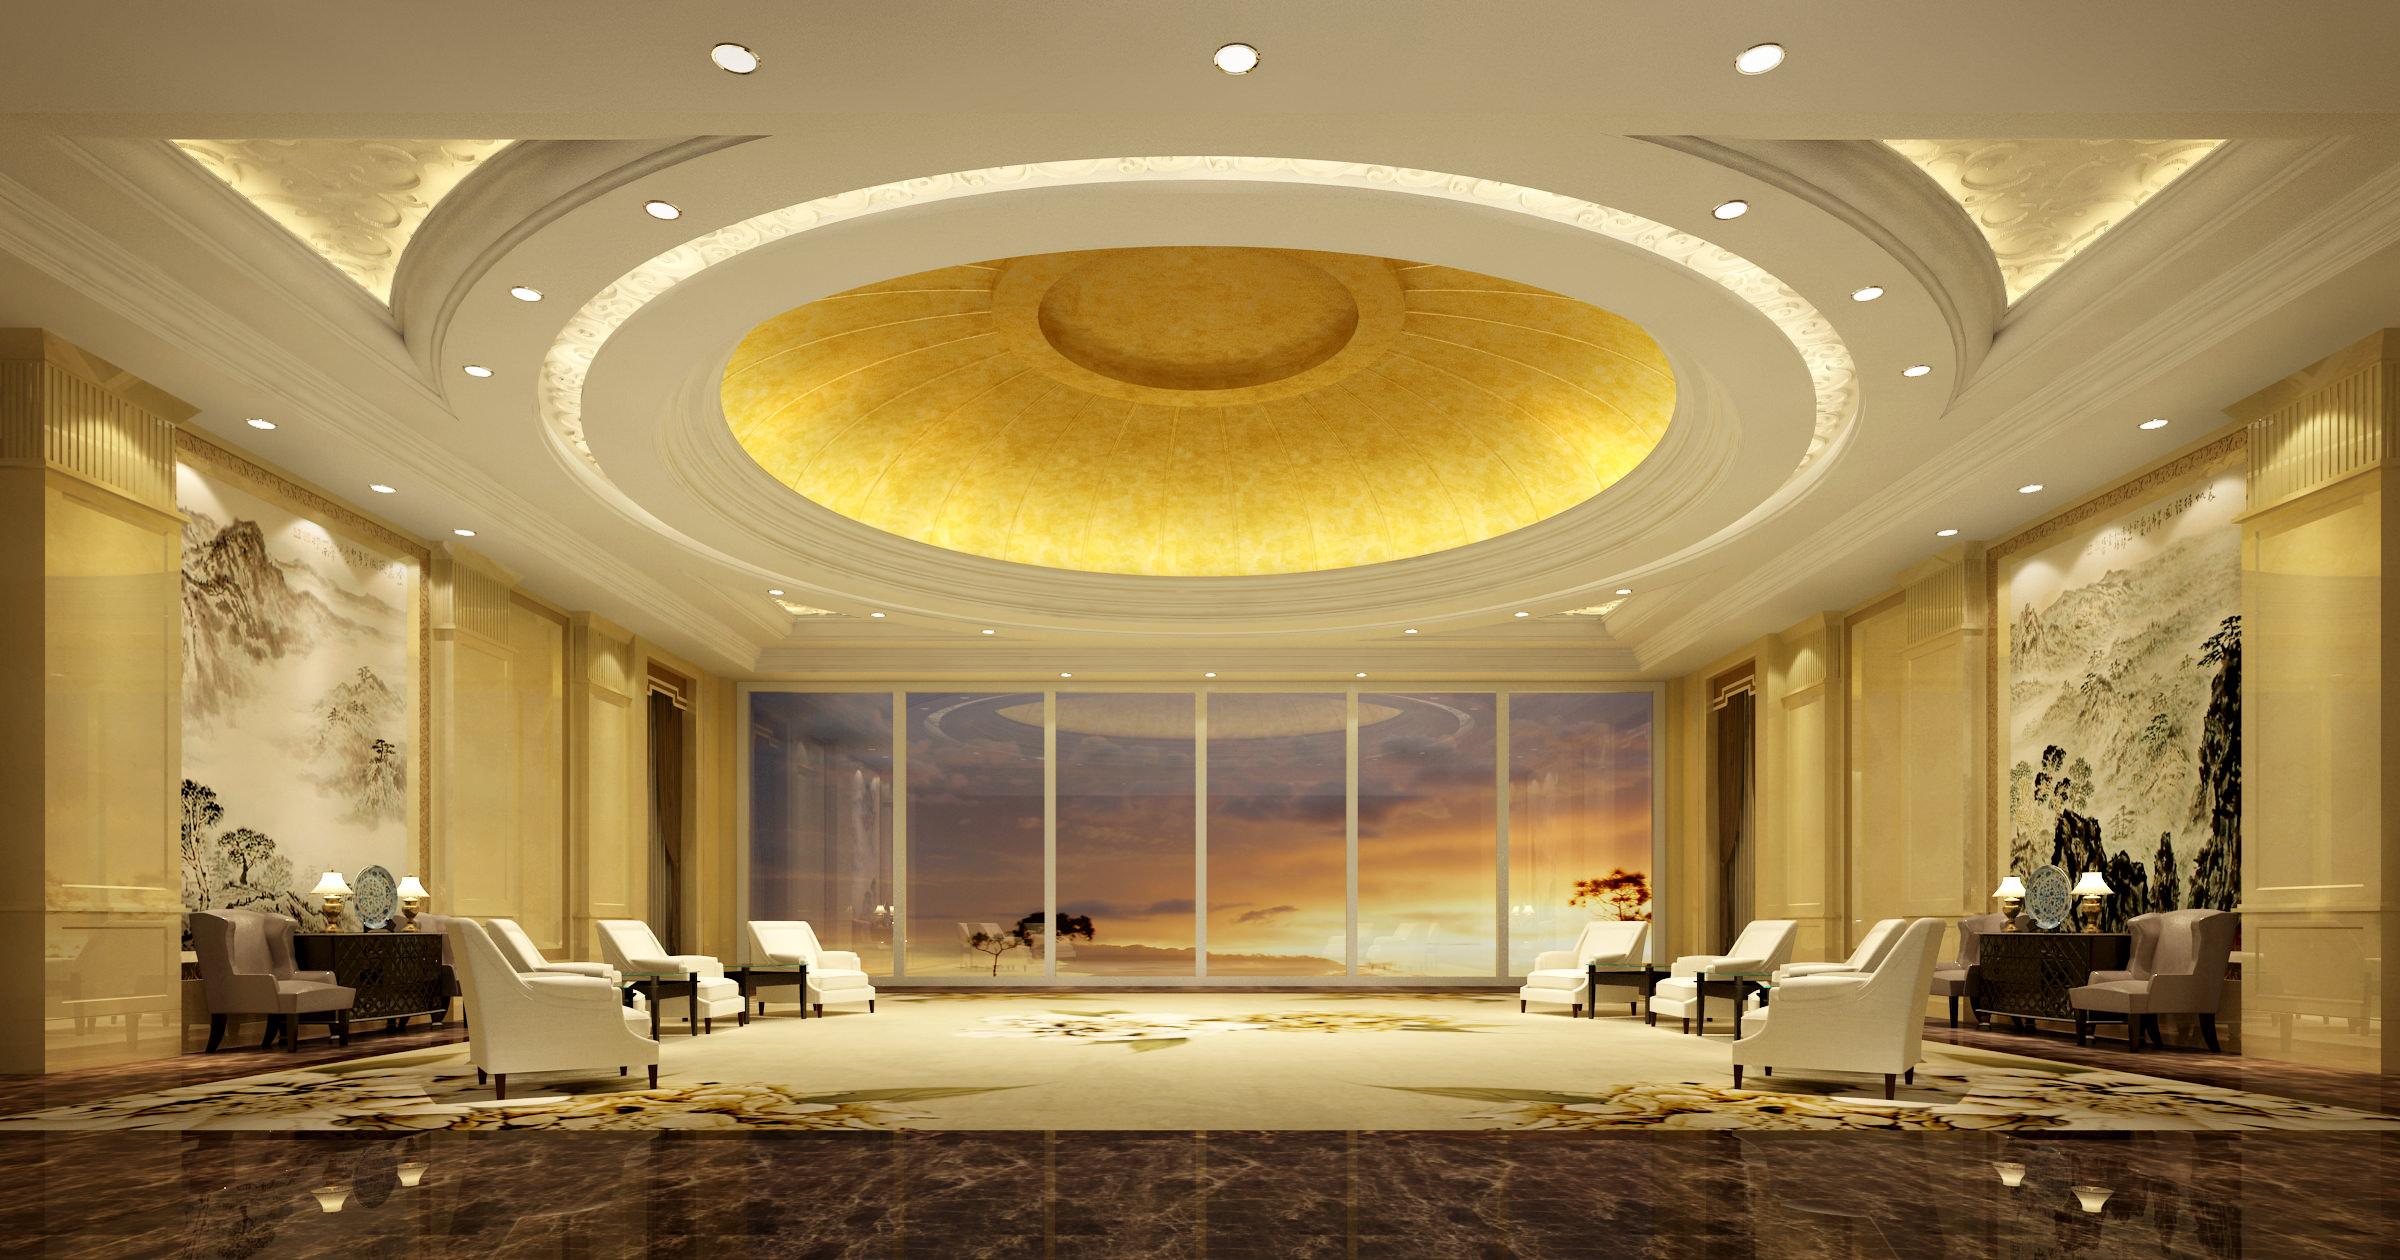 posh antechamber with classy ceiling decor 3d model max